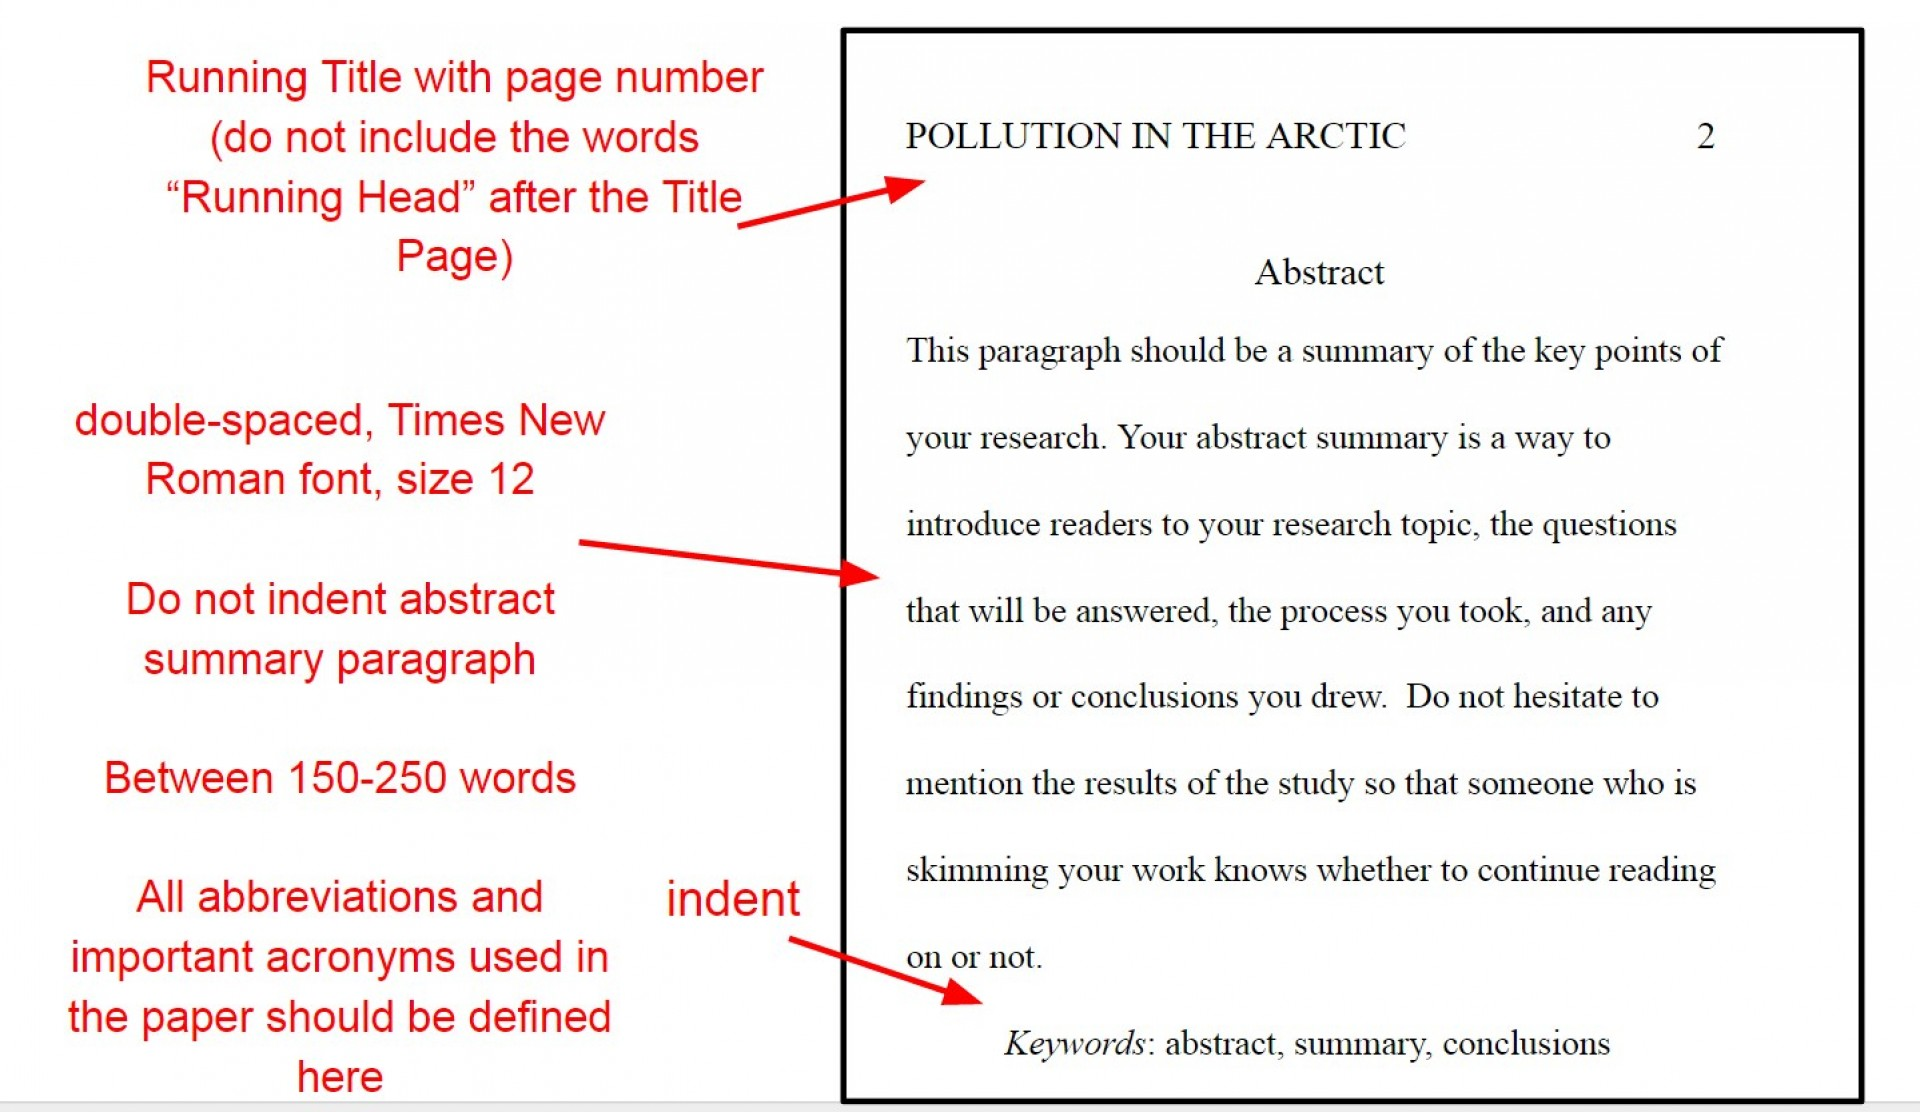 018 How To Make Citations In Research Paper Apa Unusual A 1920